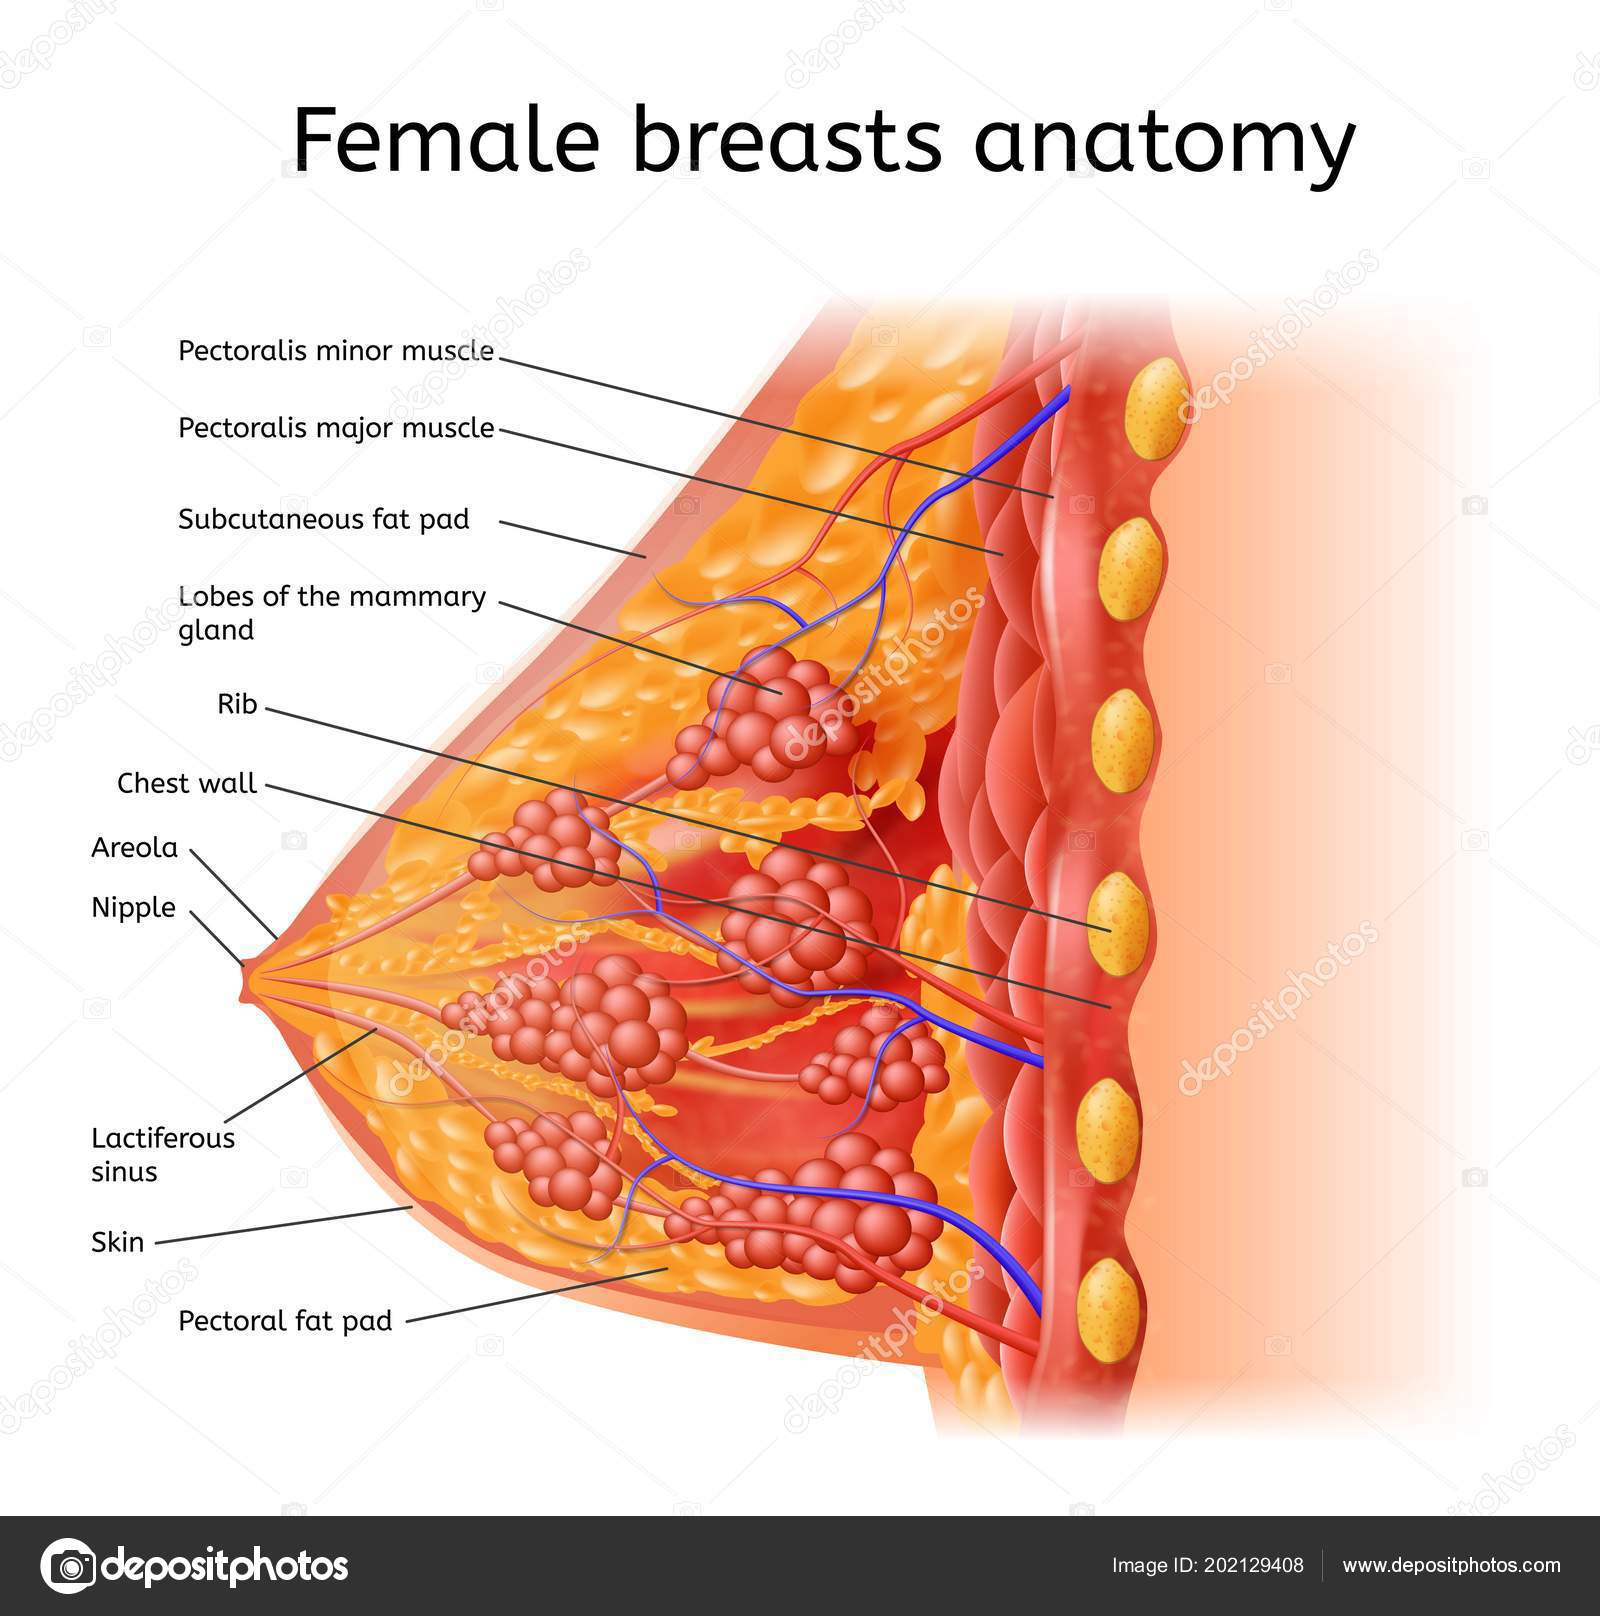 Label Of The Human Body Human Female Brest Anatomy Medical